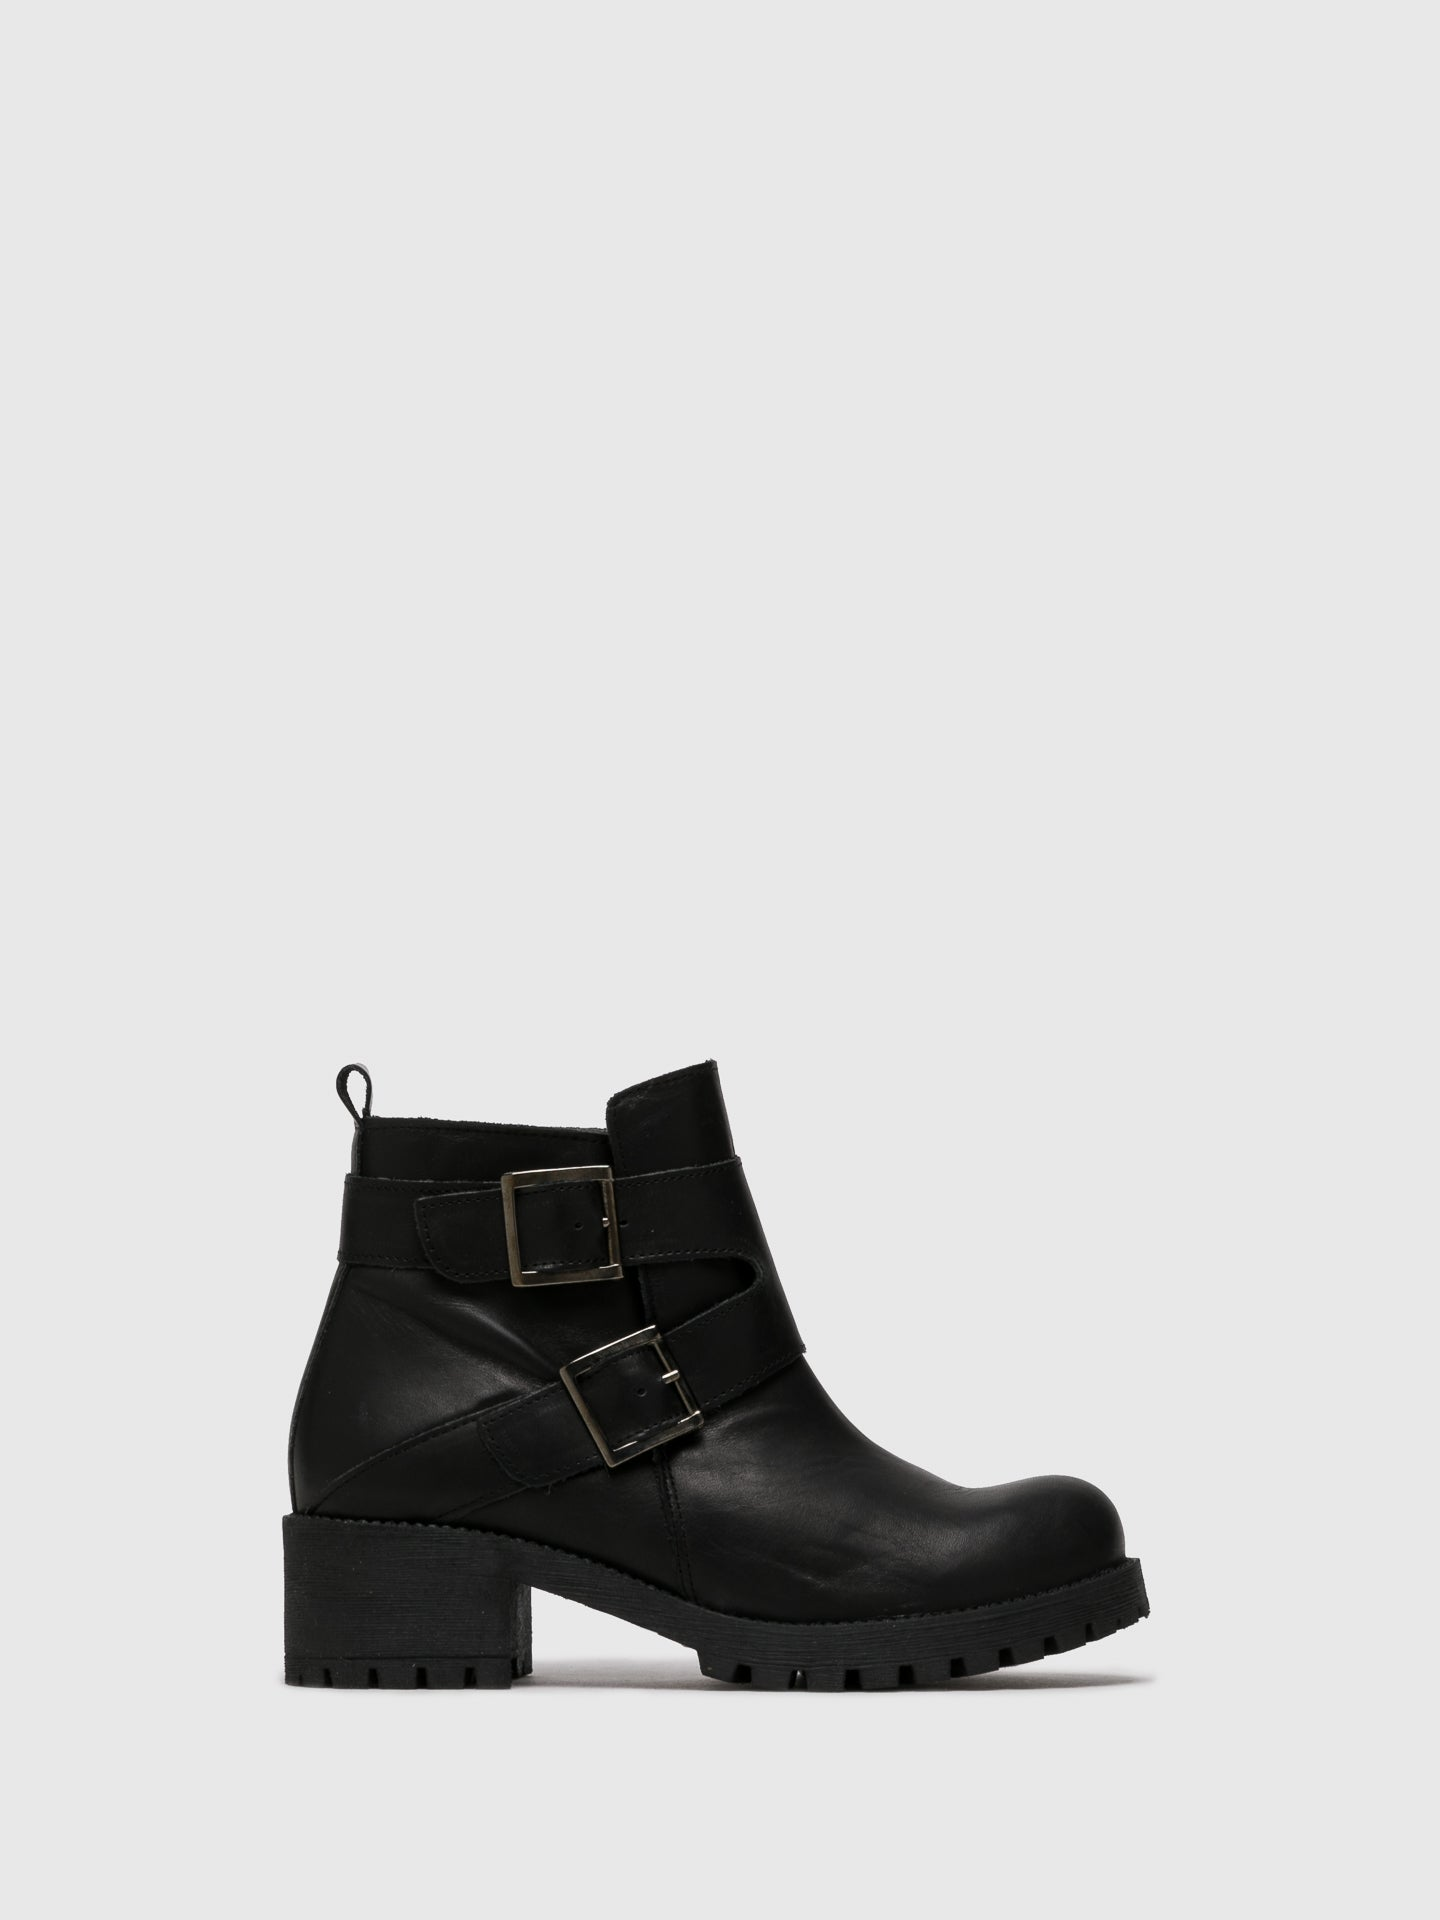 Sotoalto Black Buckle Ankle Boots